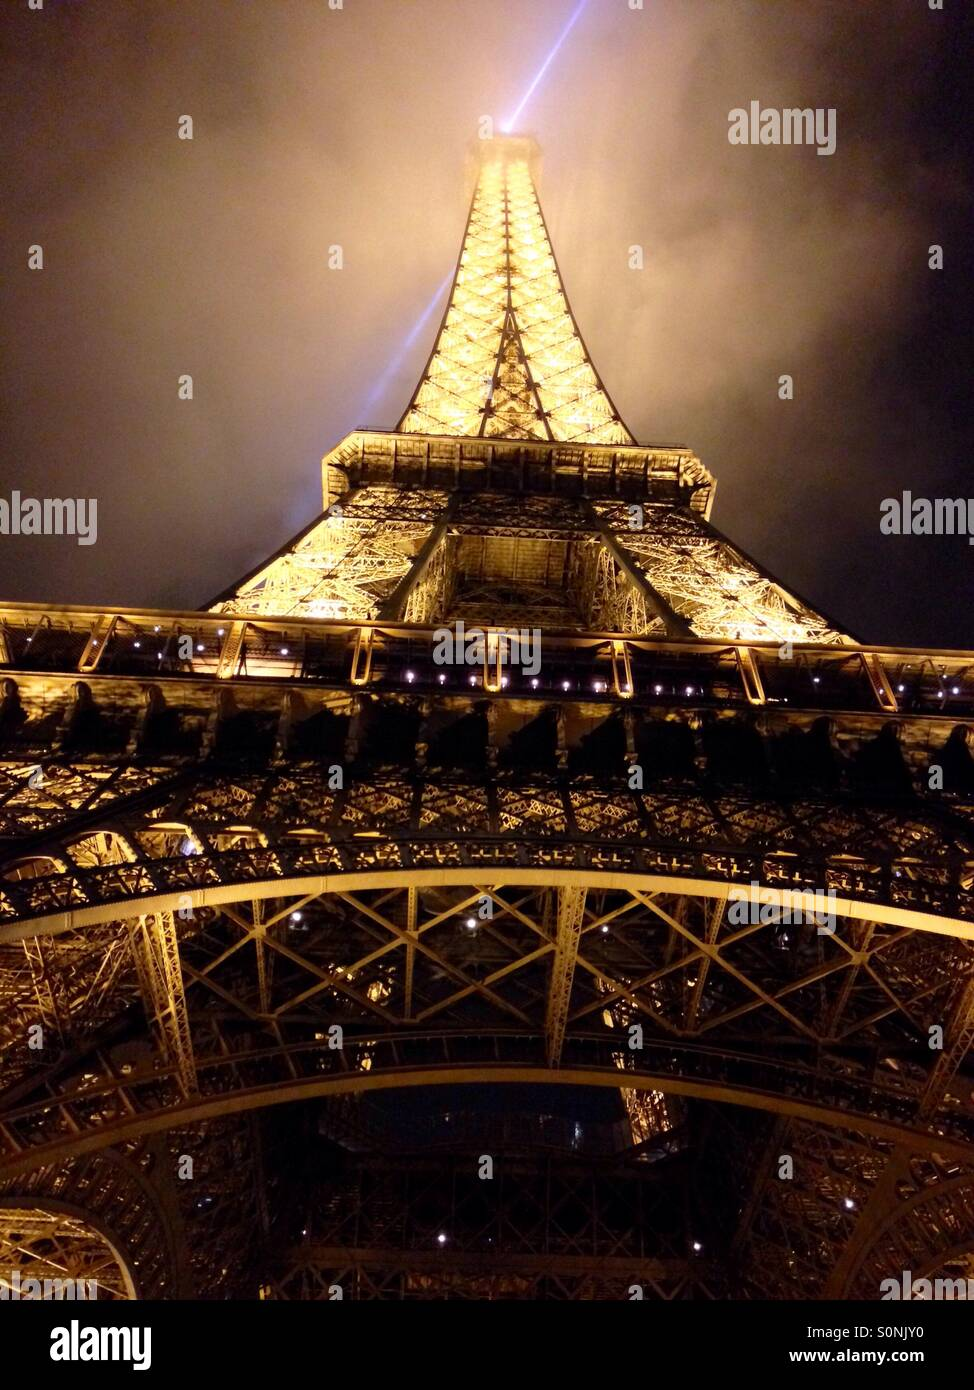 The Eiffel Tower at night. - Stock Image